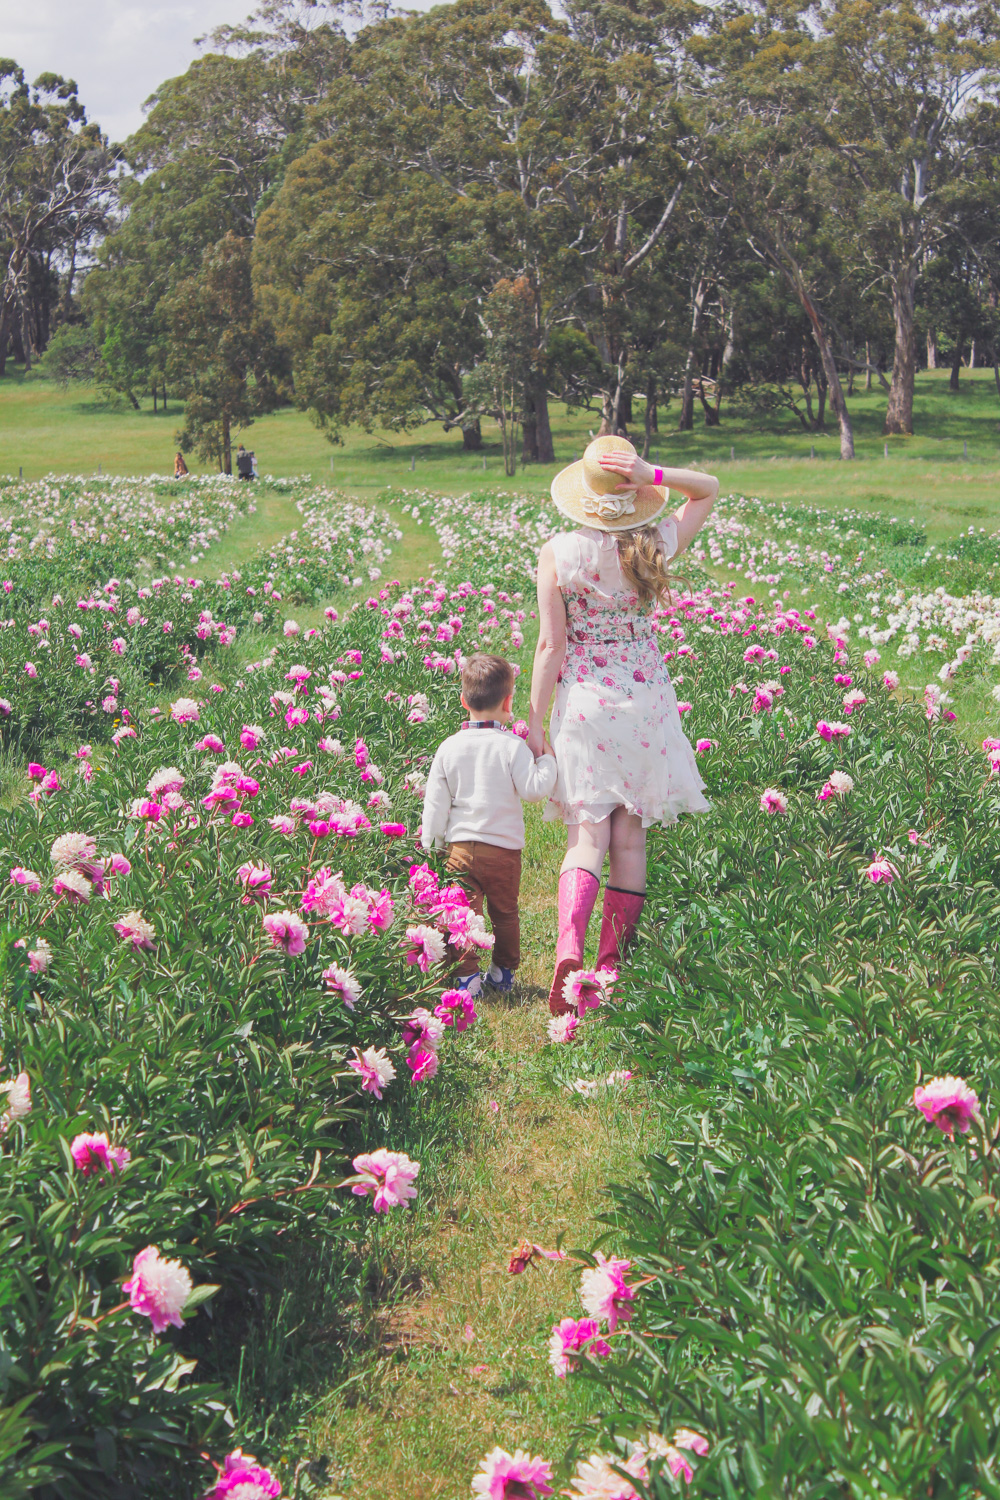 Goldfields Girl standing in the Peony Paddock at Spring Hill Peony Farm wearing an Alannah Hill dress and straw hat